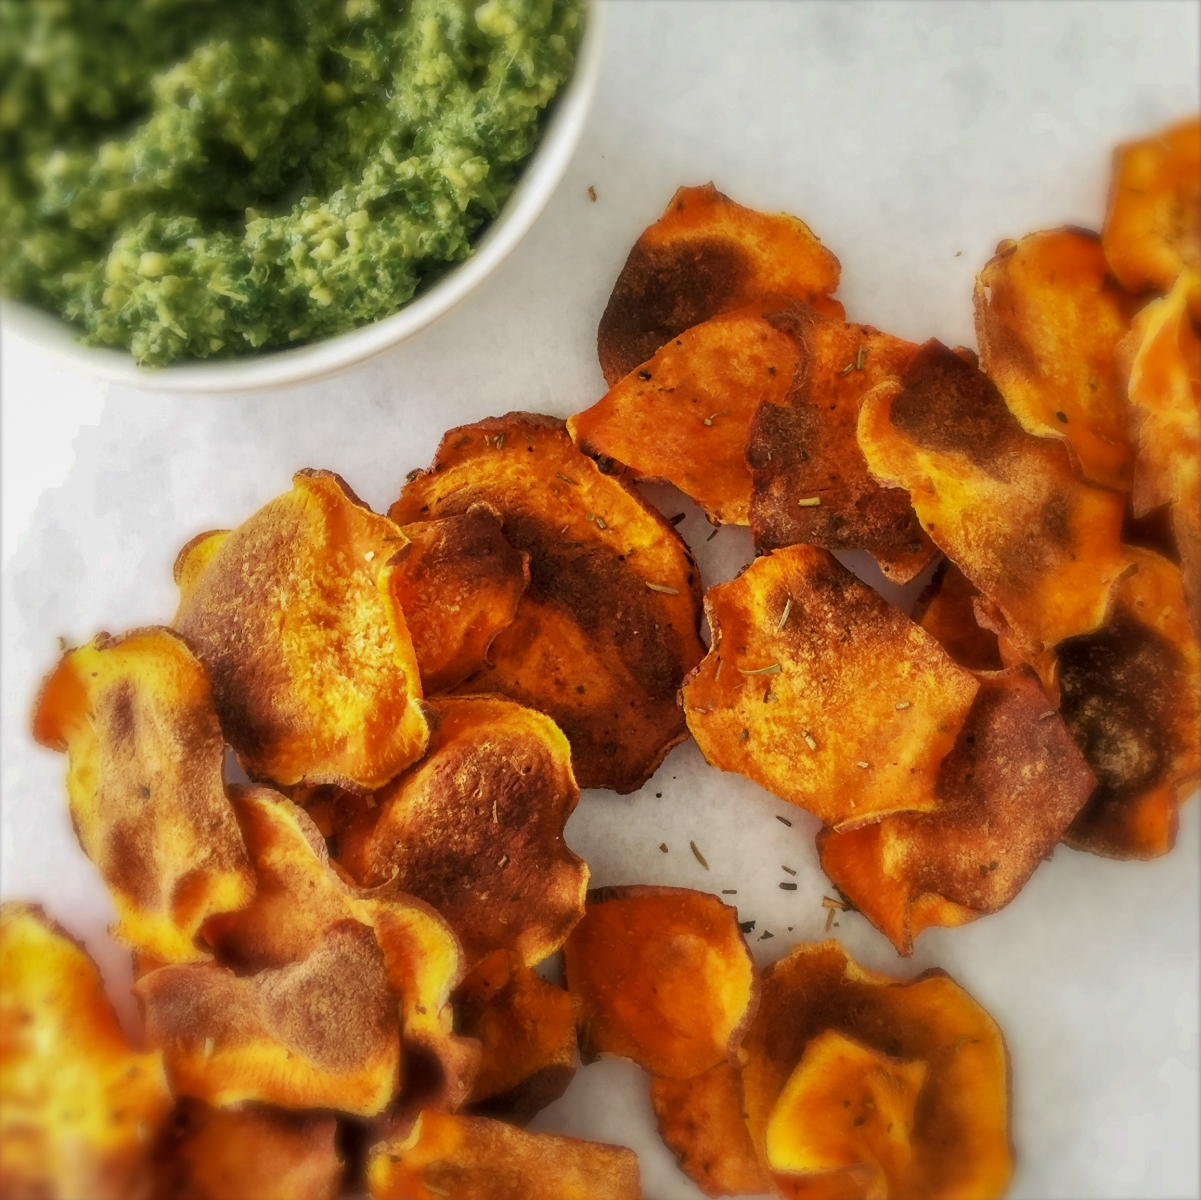 Oven-Baked Sweet Potato Chips With Kale Peso [Vegan, Paleo]